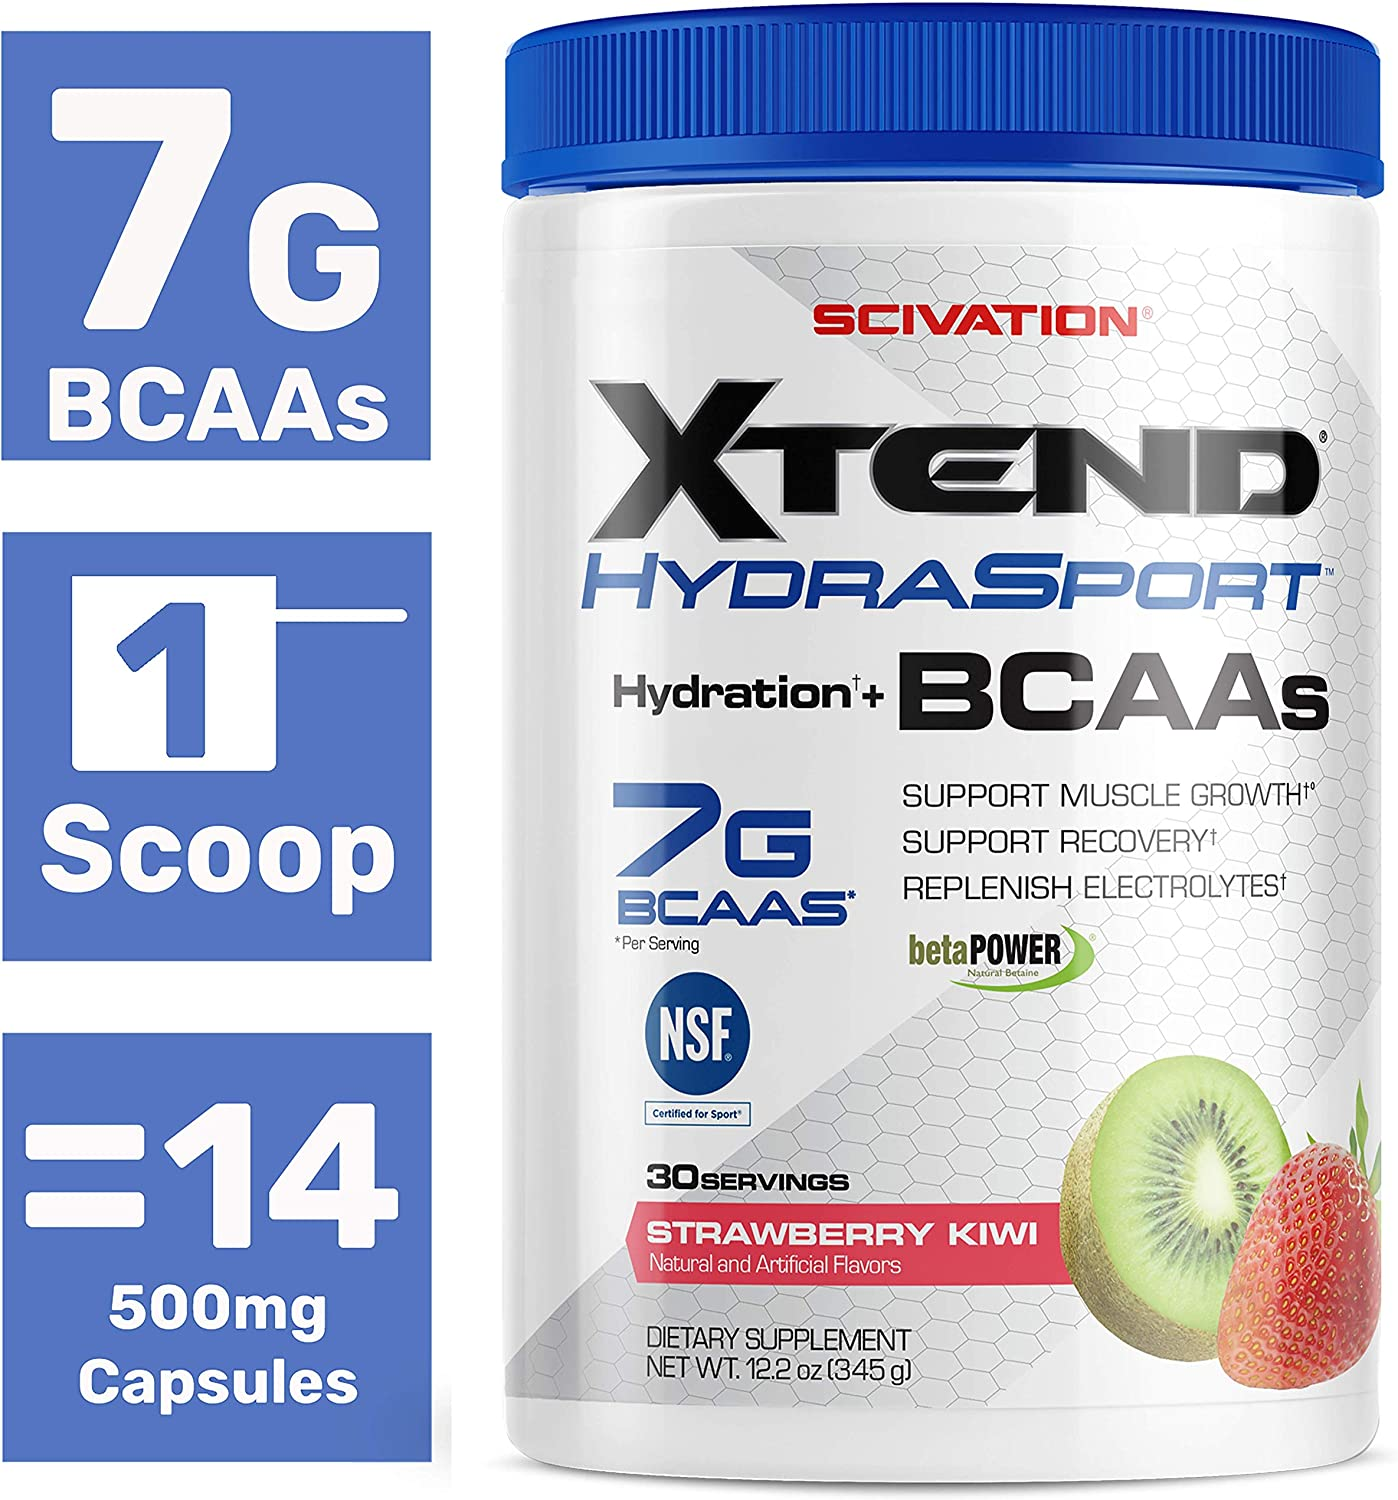 Scivation XTEND Sport BCAA Powder Strawberry Kiwi | NSF Certified for Sport + Sugar Free Post Workout Muscle Recovery Drink with Amino Acids |30 Servings | Packaging May Vary